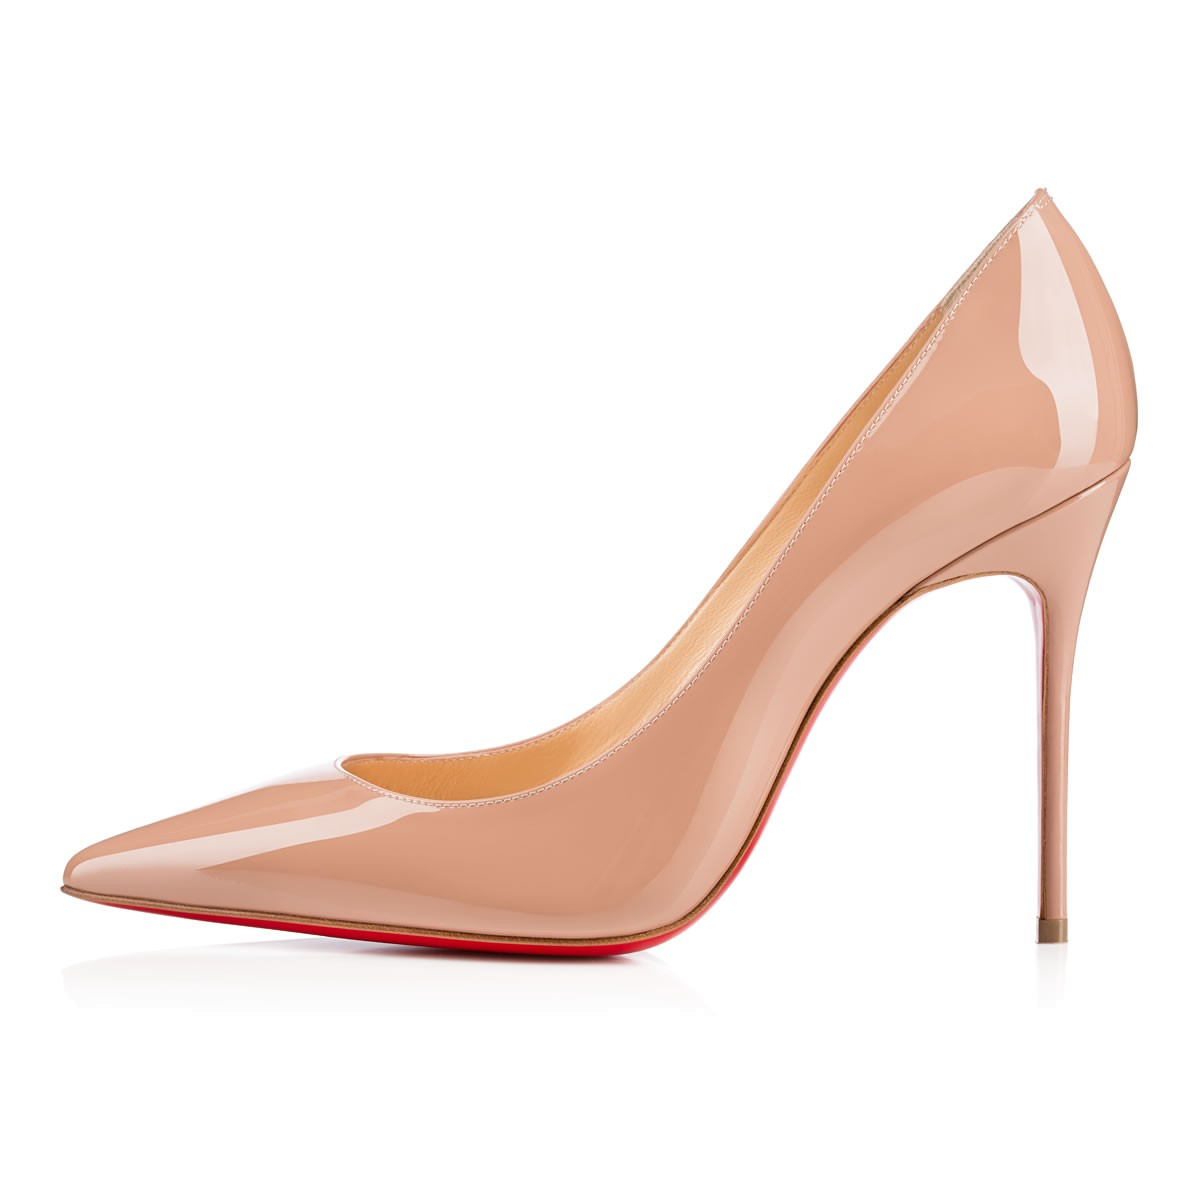 2a4b5b80ff6b Shoes - Kate - Christian Louboutin Shoes - Kate - Christian Louboutin ...